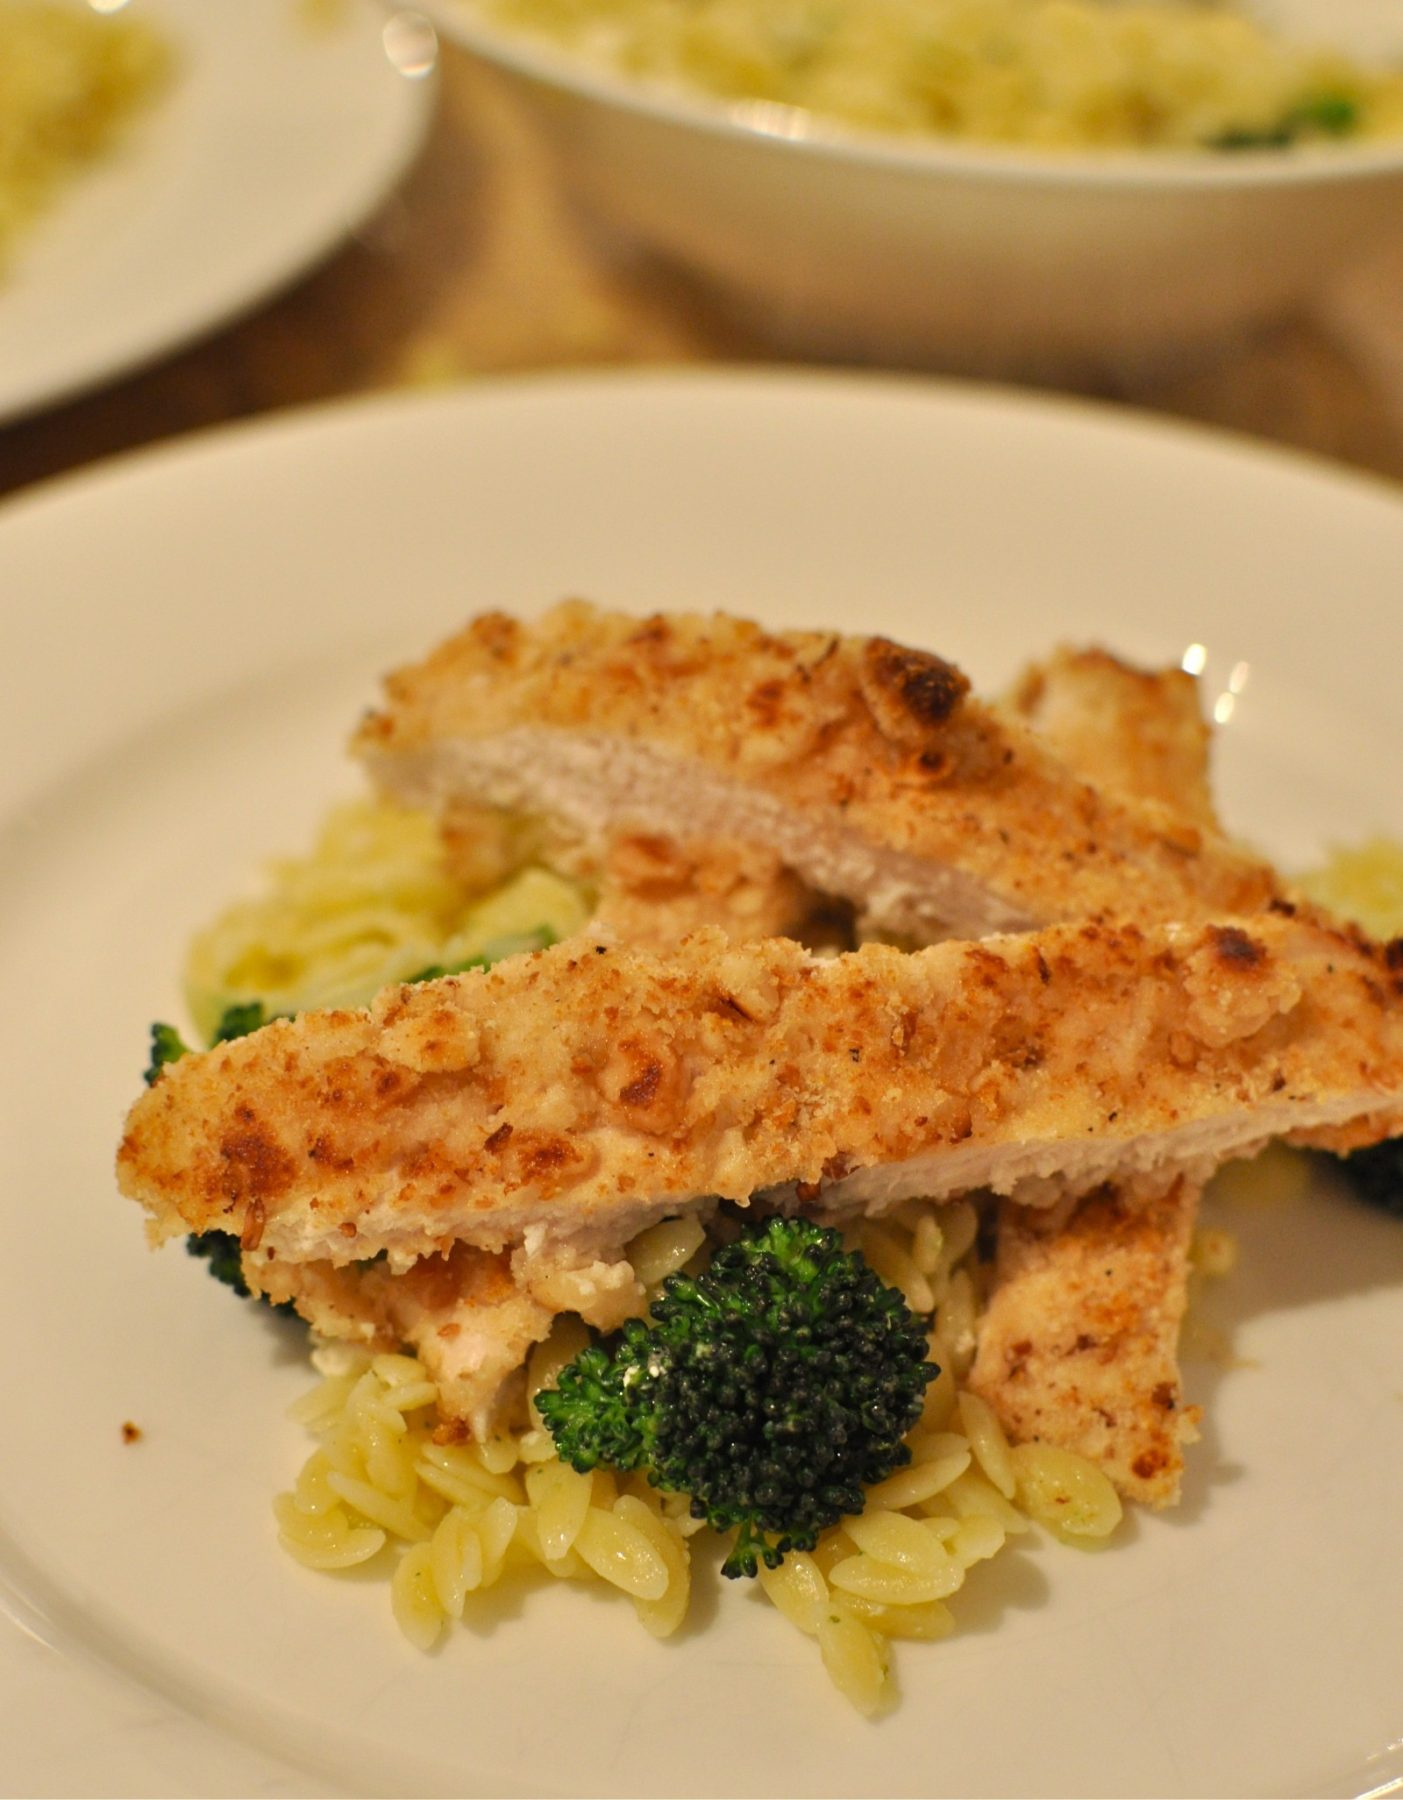 Macadamia crumbed chicken